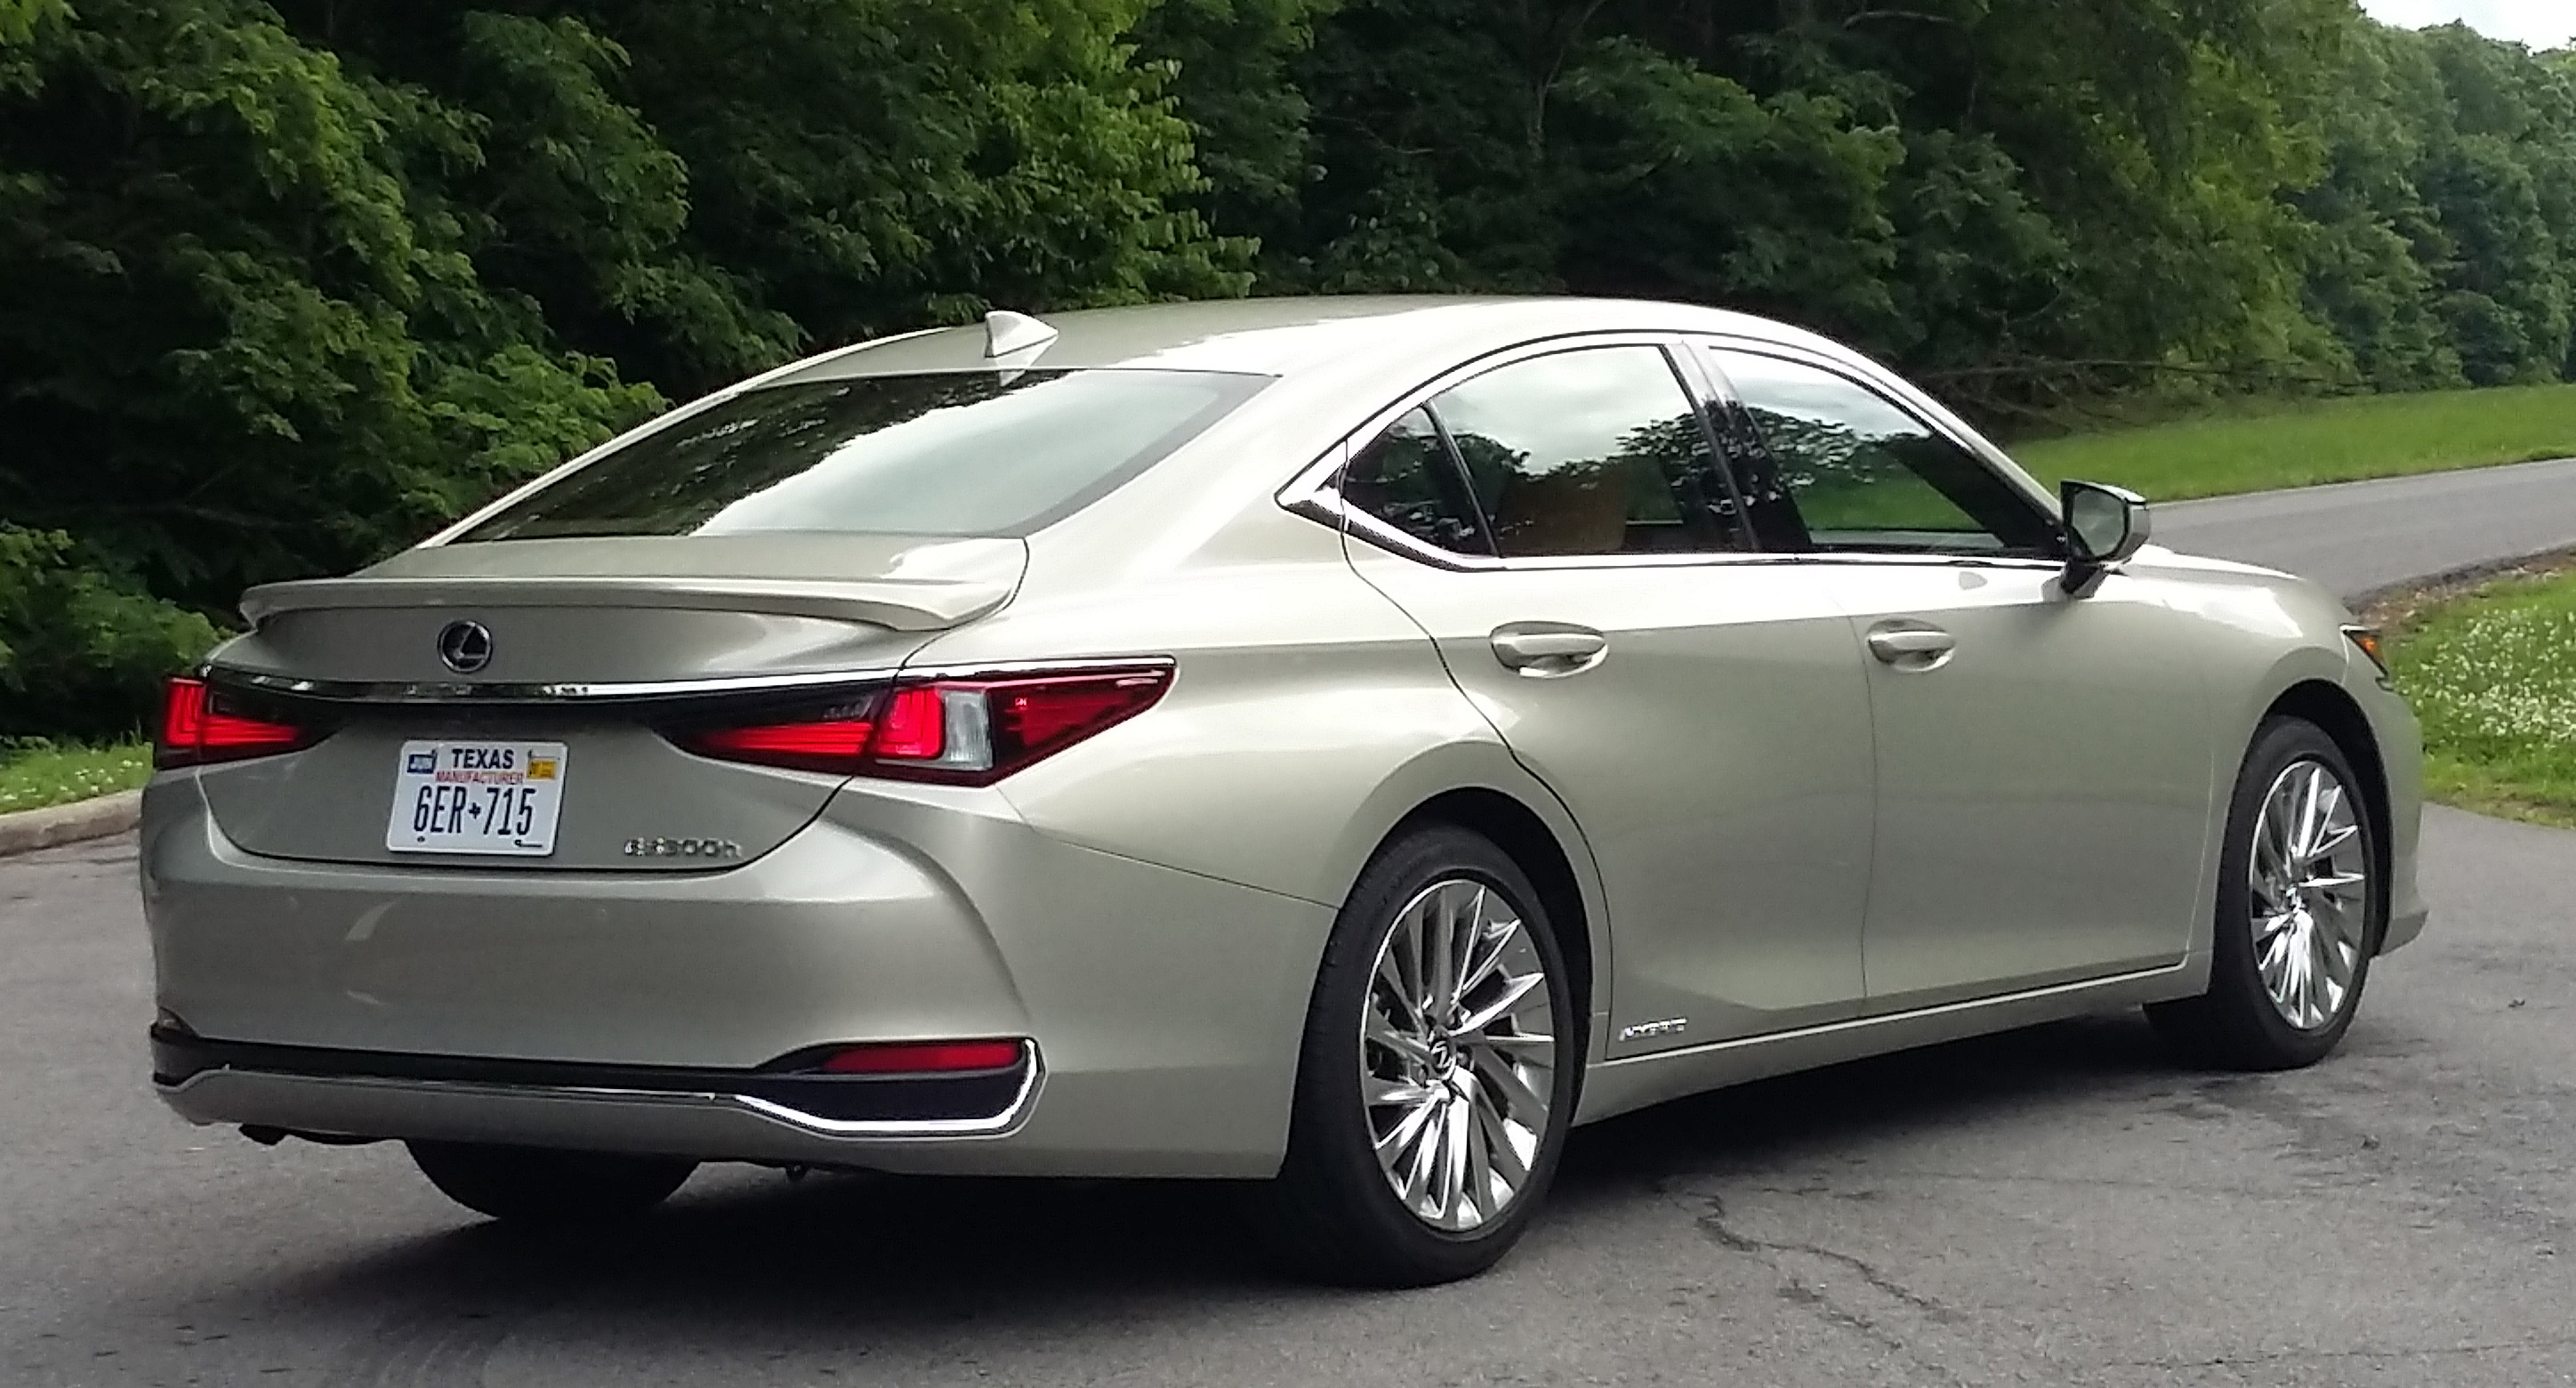 2019 Lexus Es Both The 300h Hybrid Shown And Performance Oriented F Sport Come With A Rear Spoiler Regular 350 Lacks